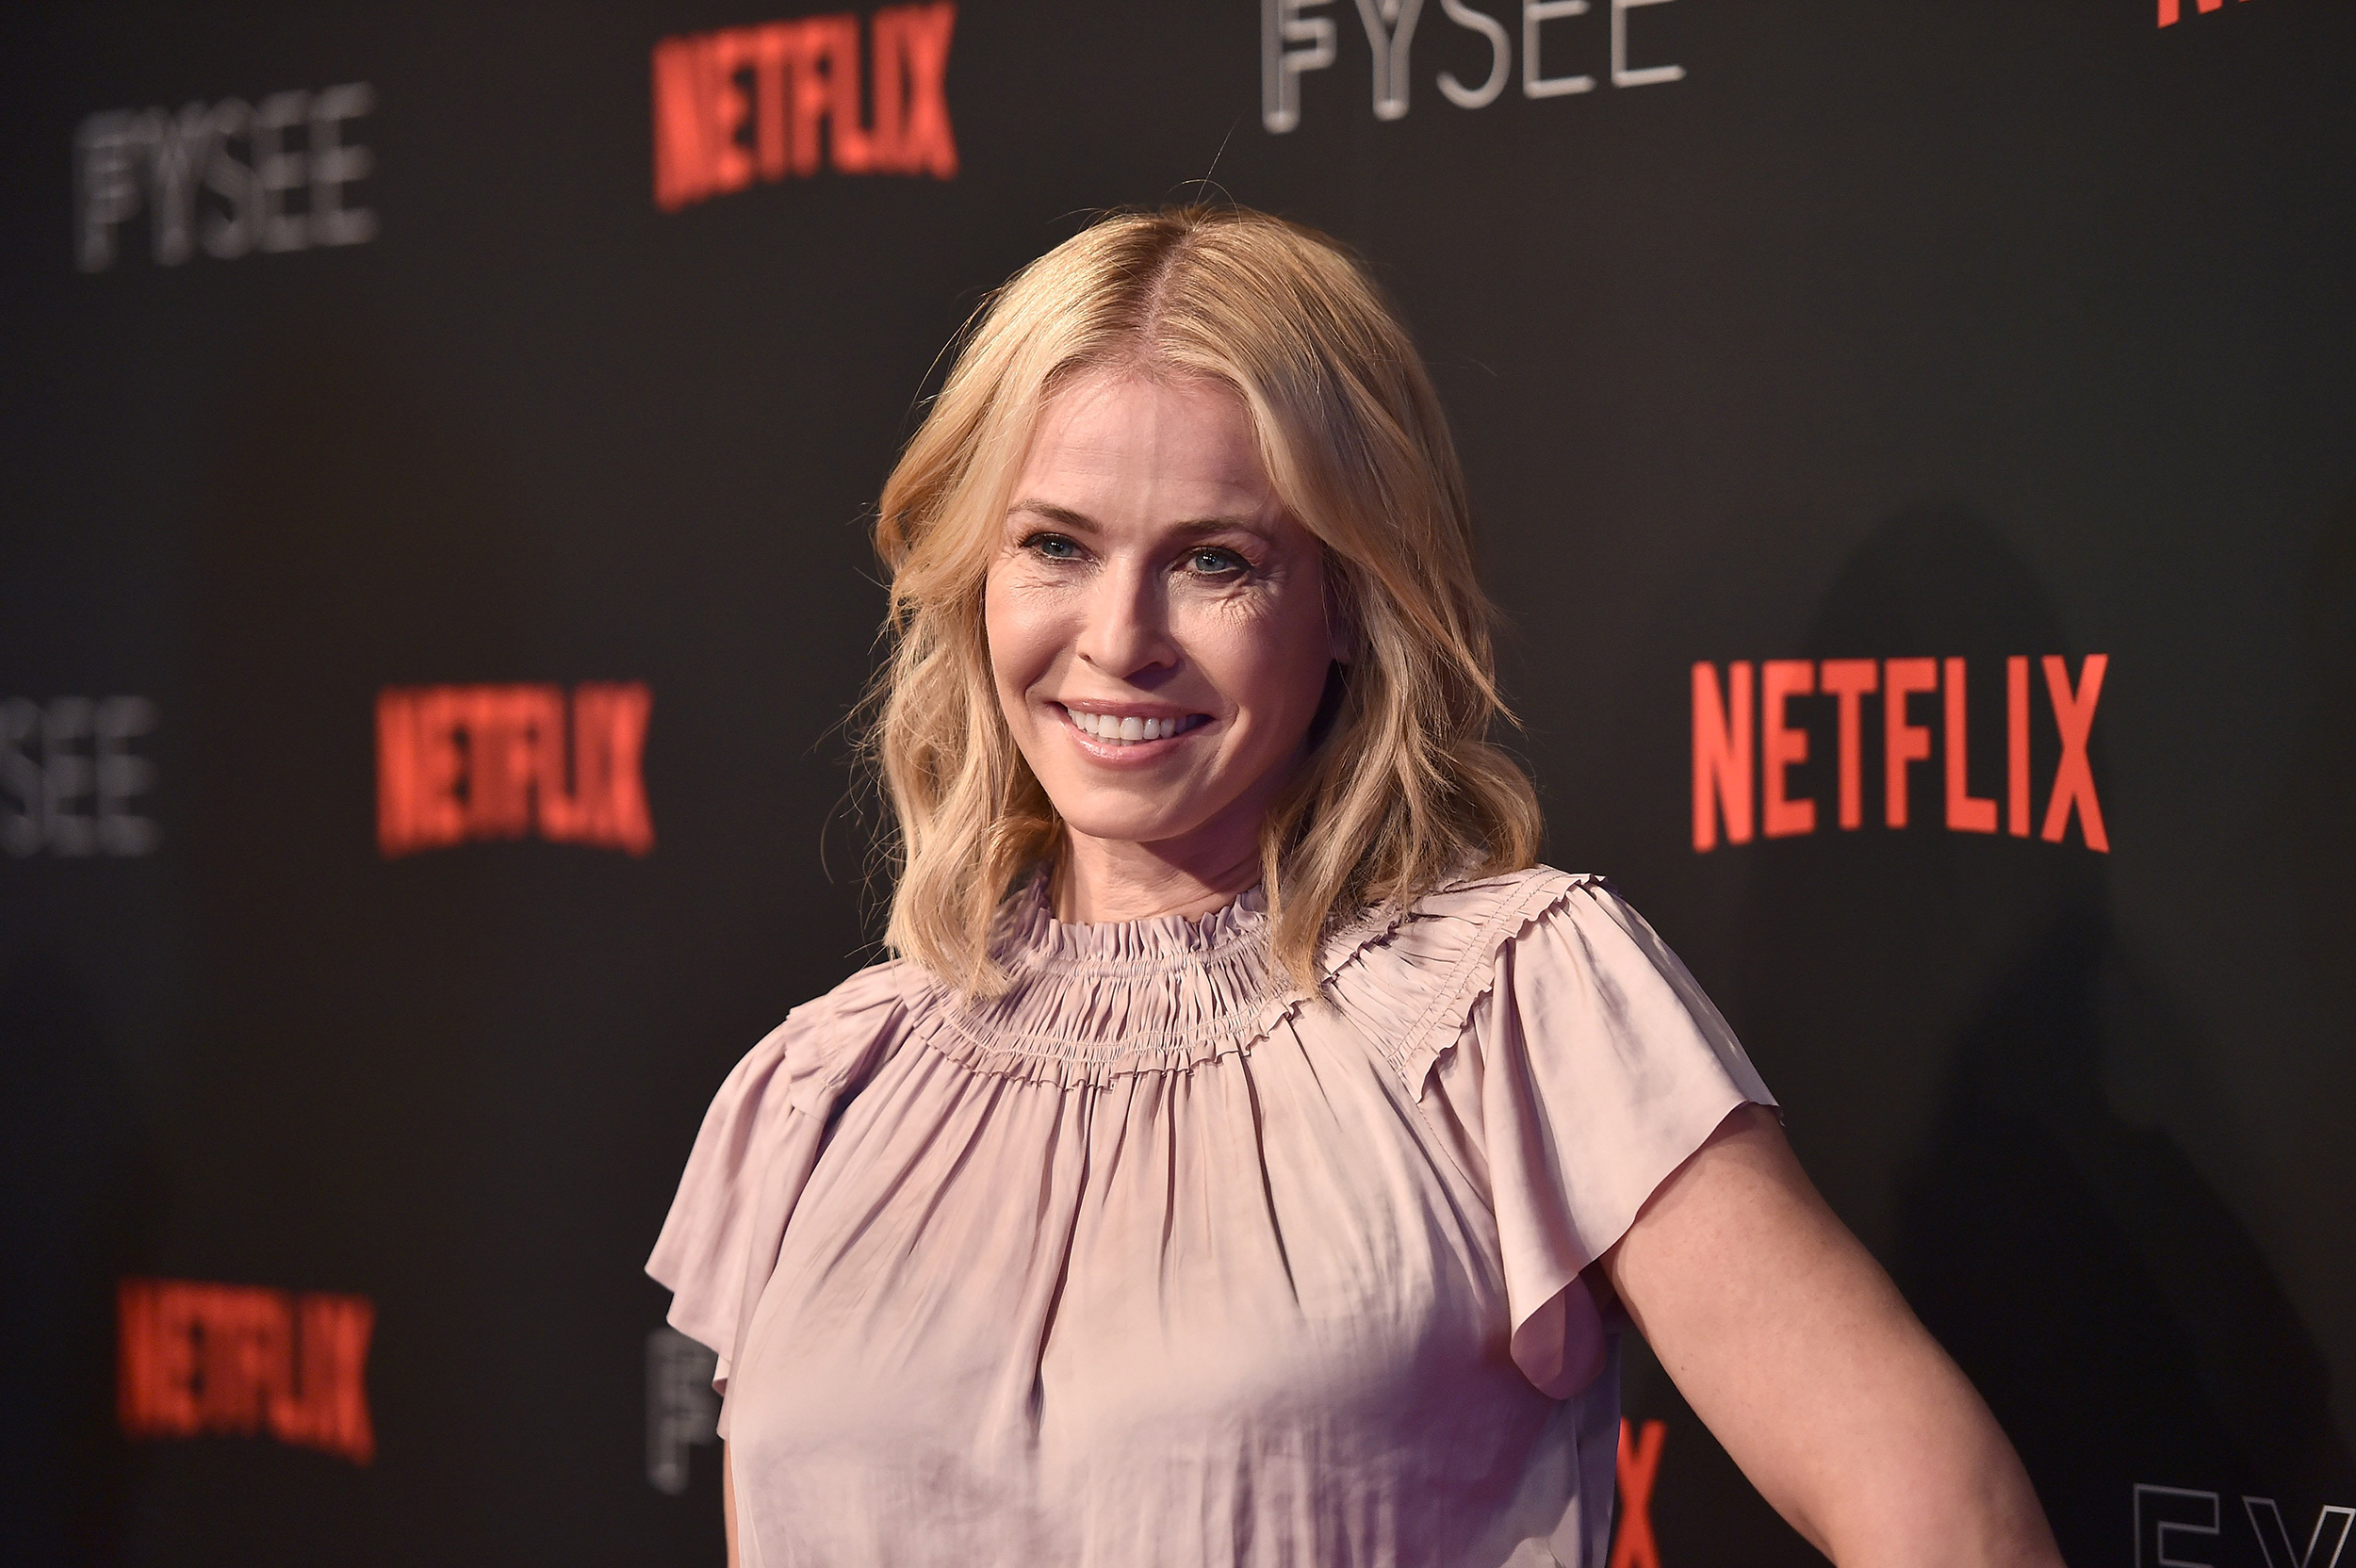 Chelsea Handler Mixes Up Native American Candidates In Endorsement On Twitter